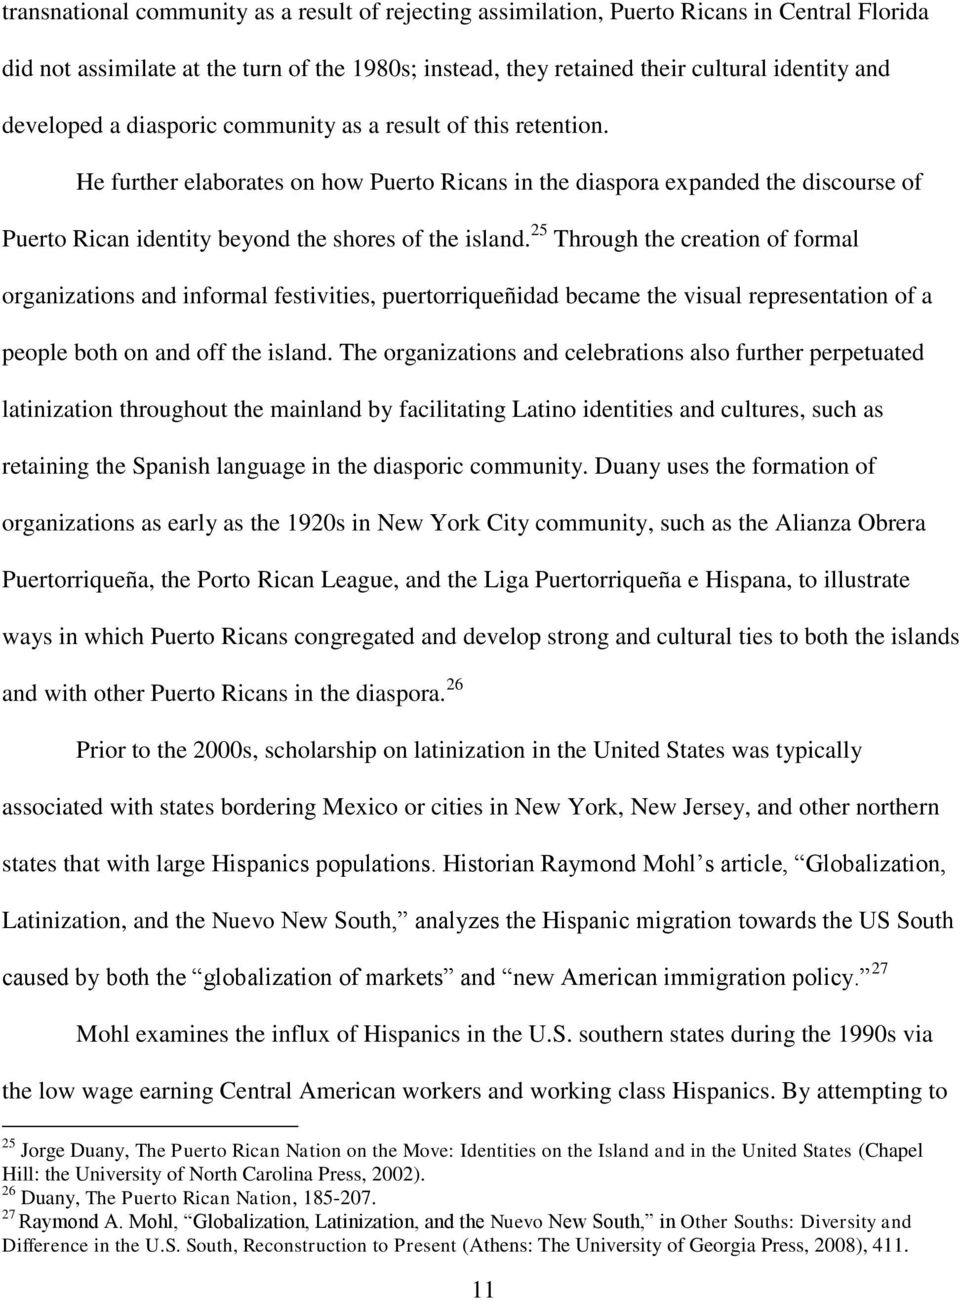 He further elaborates on how Puerto Ricans in the diaspora expanded the discourse of Puerto Rican identity beyond the shores of the island.